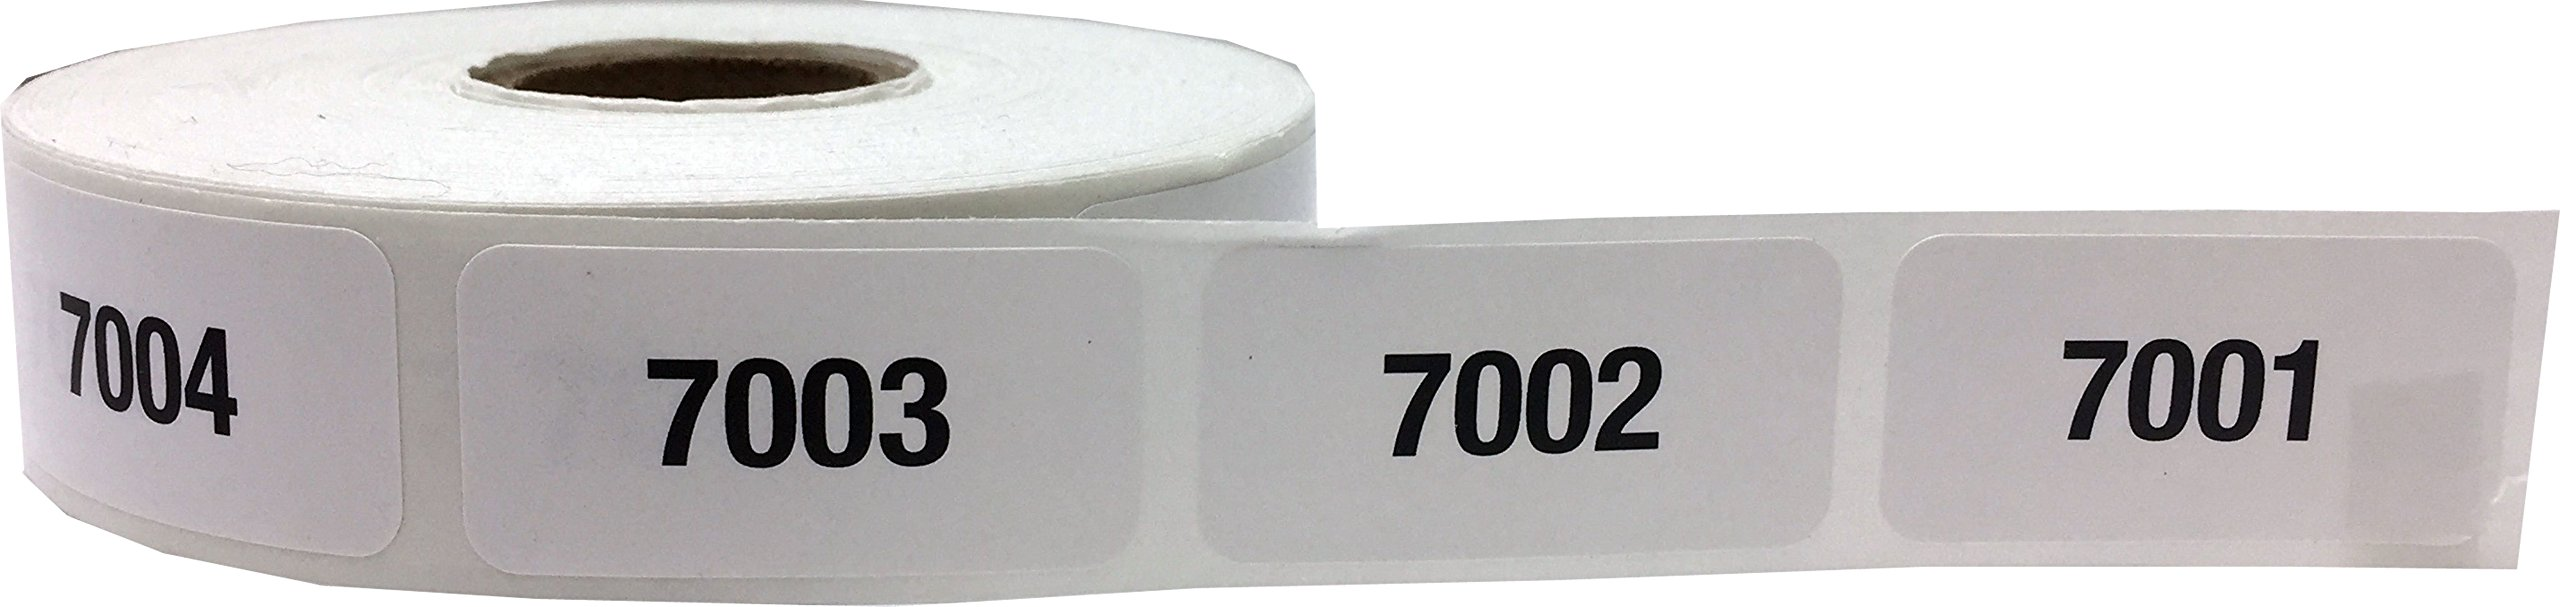 Consecutive Number Labels Bulk Pack Numbers 1 Through 10,000 White/Black .75 x 1.5 Rectangle Small Number Stickers For Inventory by InStockLabels.com (Image #10)